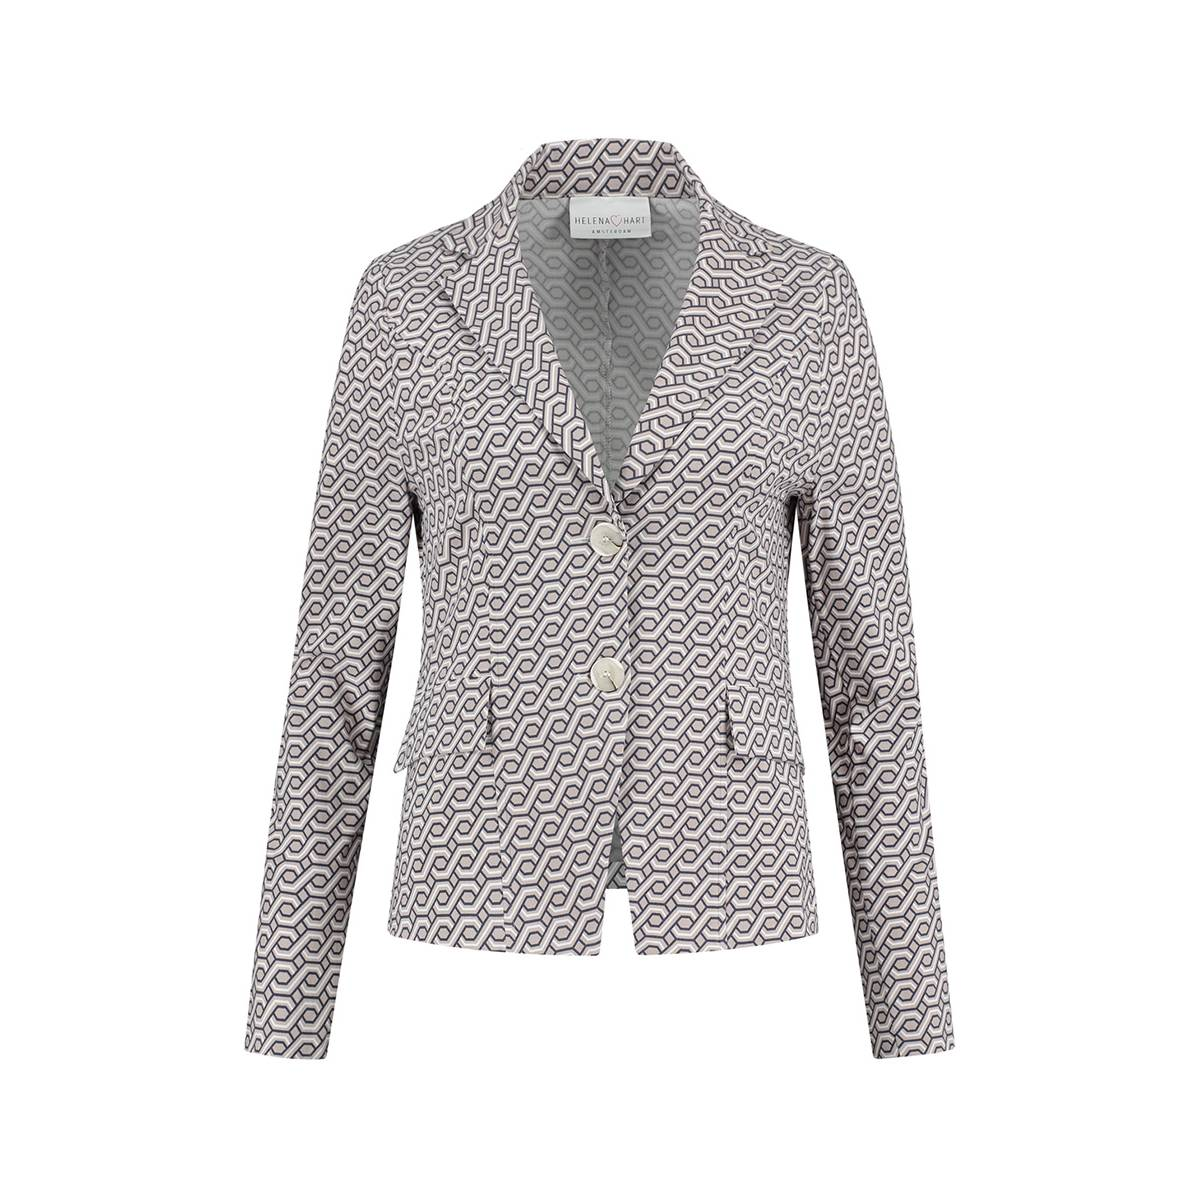 Helena Hart 7223ABS BLAZER LARA ABSTRACT Ecru